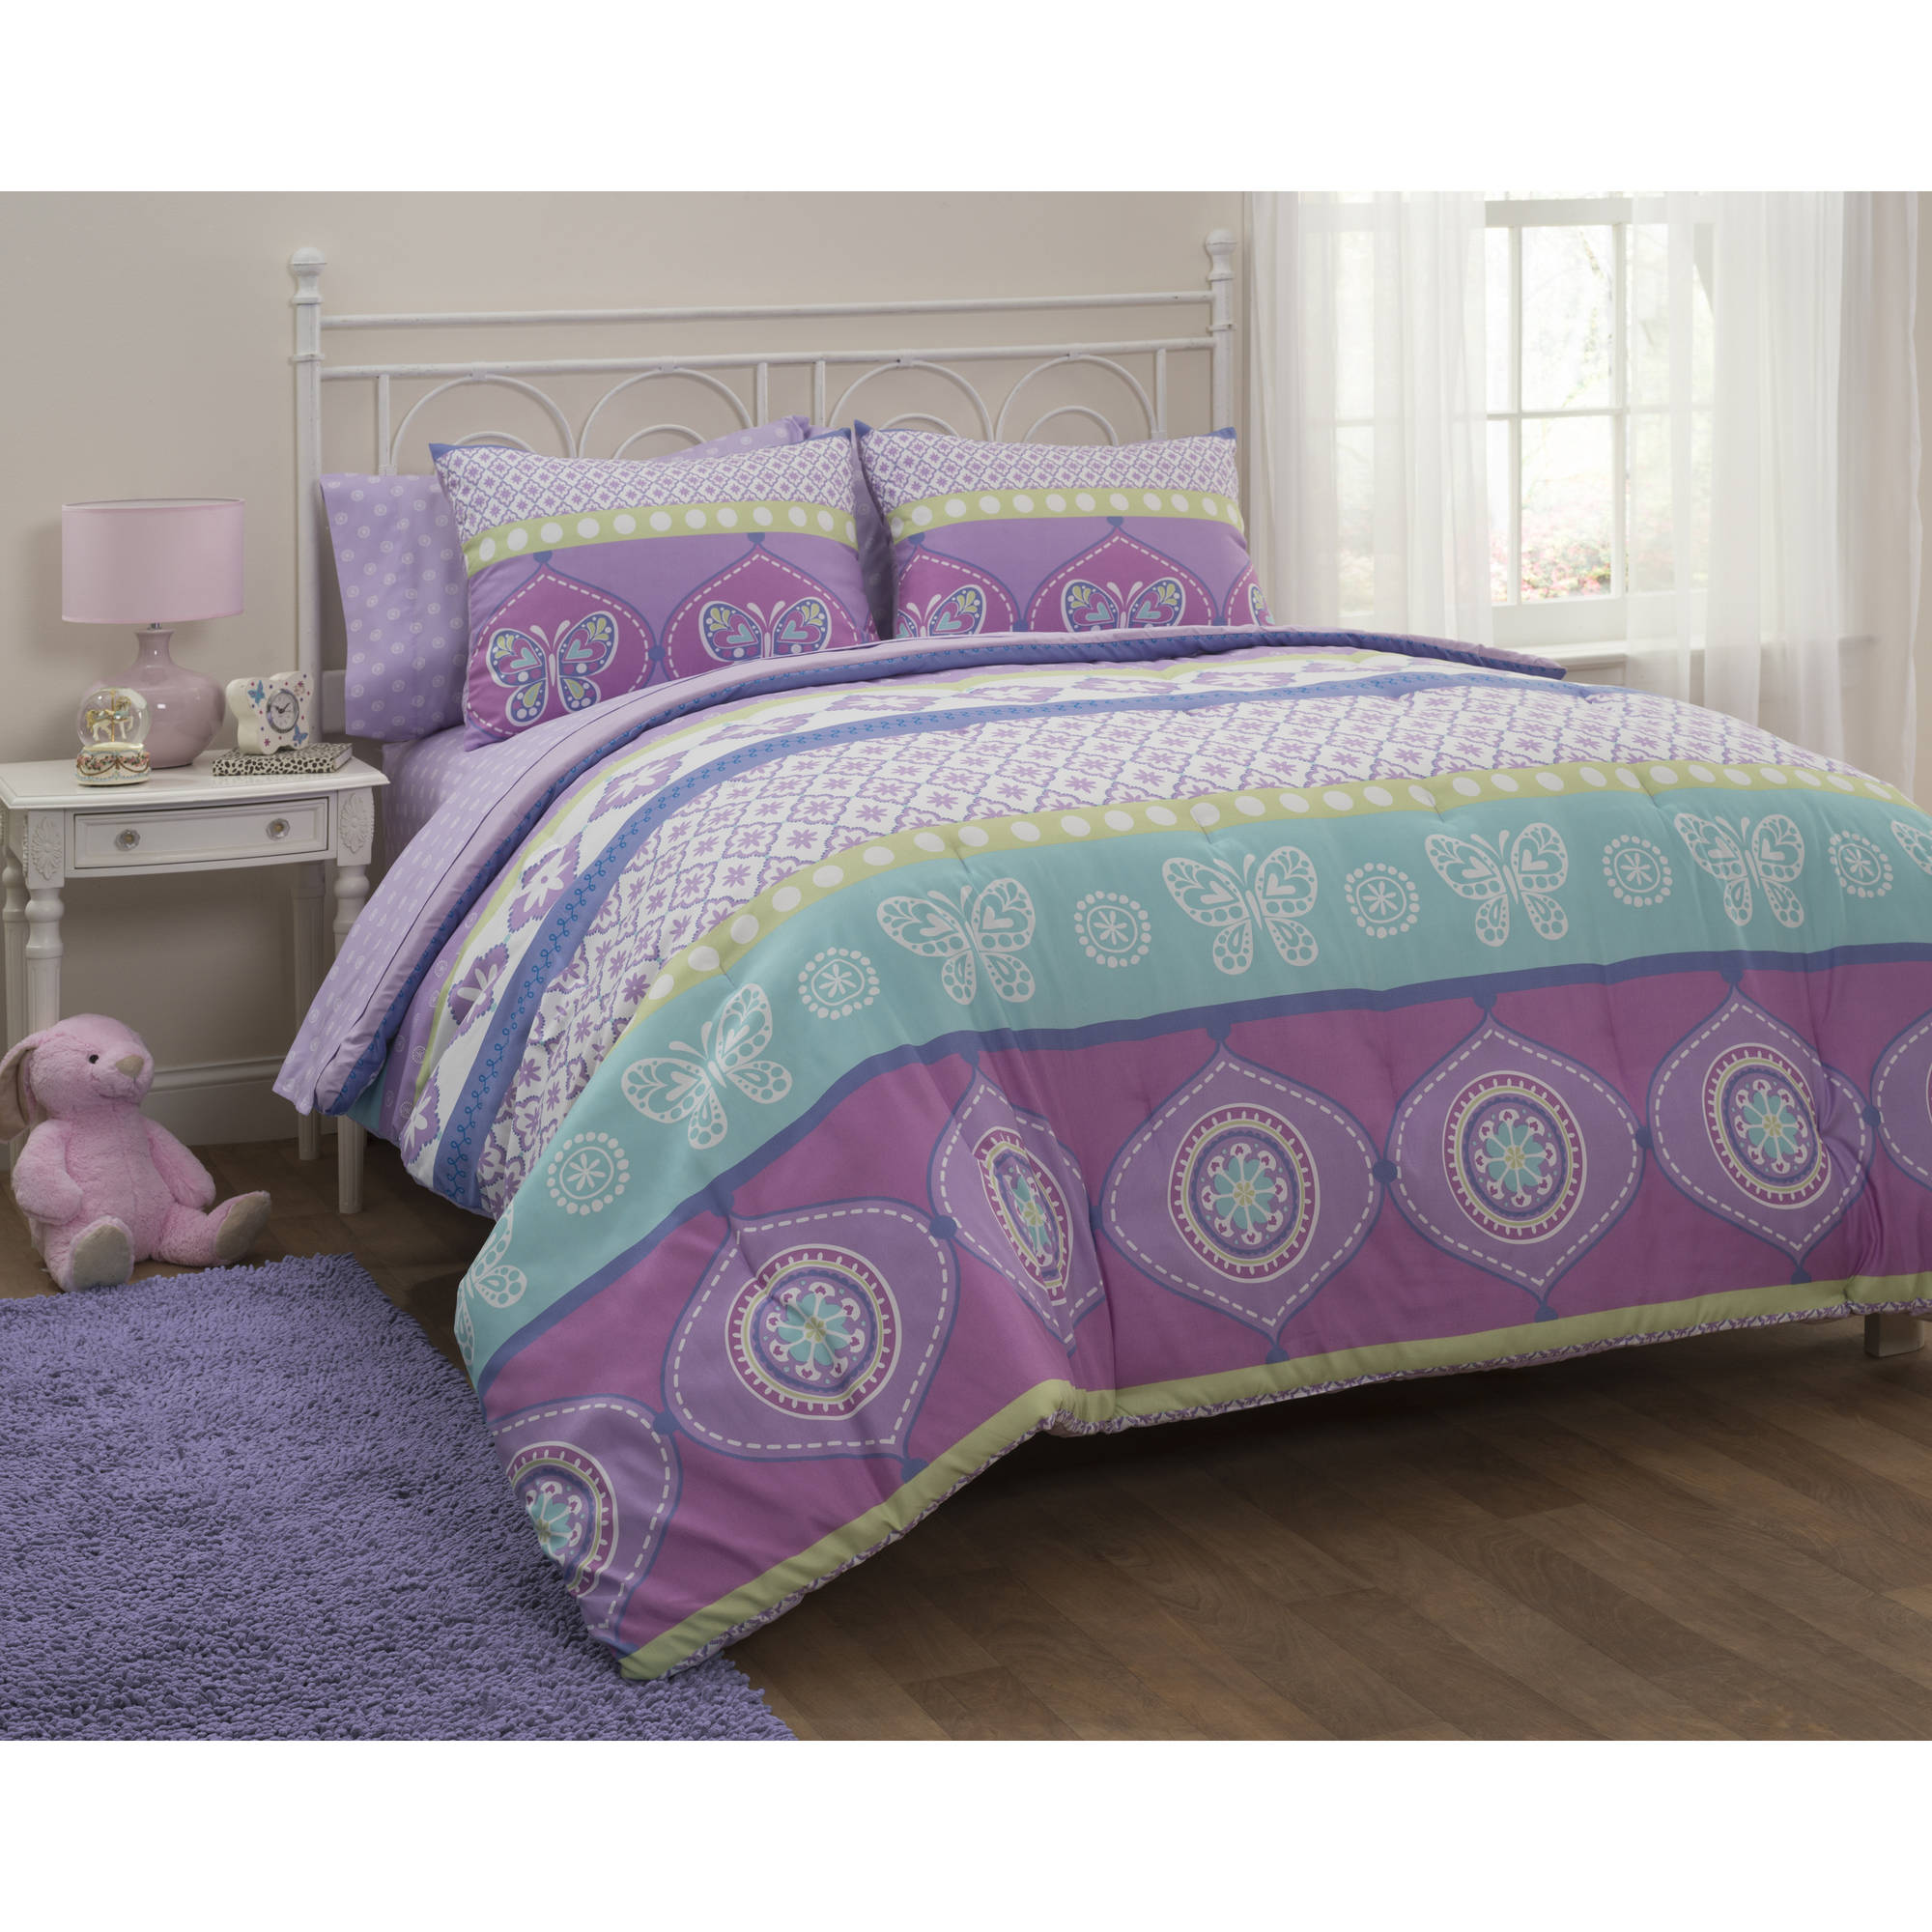 Mainstays Kids Boho Princess Bed in a Bag Bedding Set by Idea Nuova